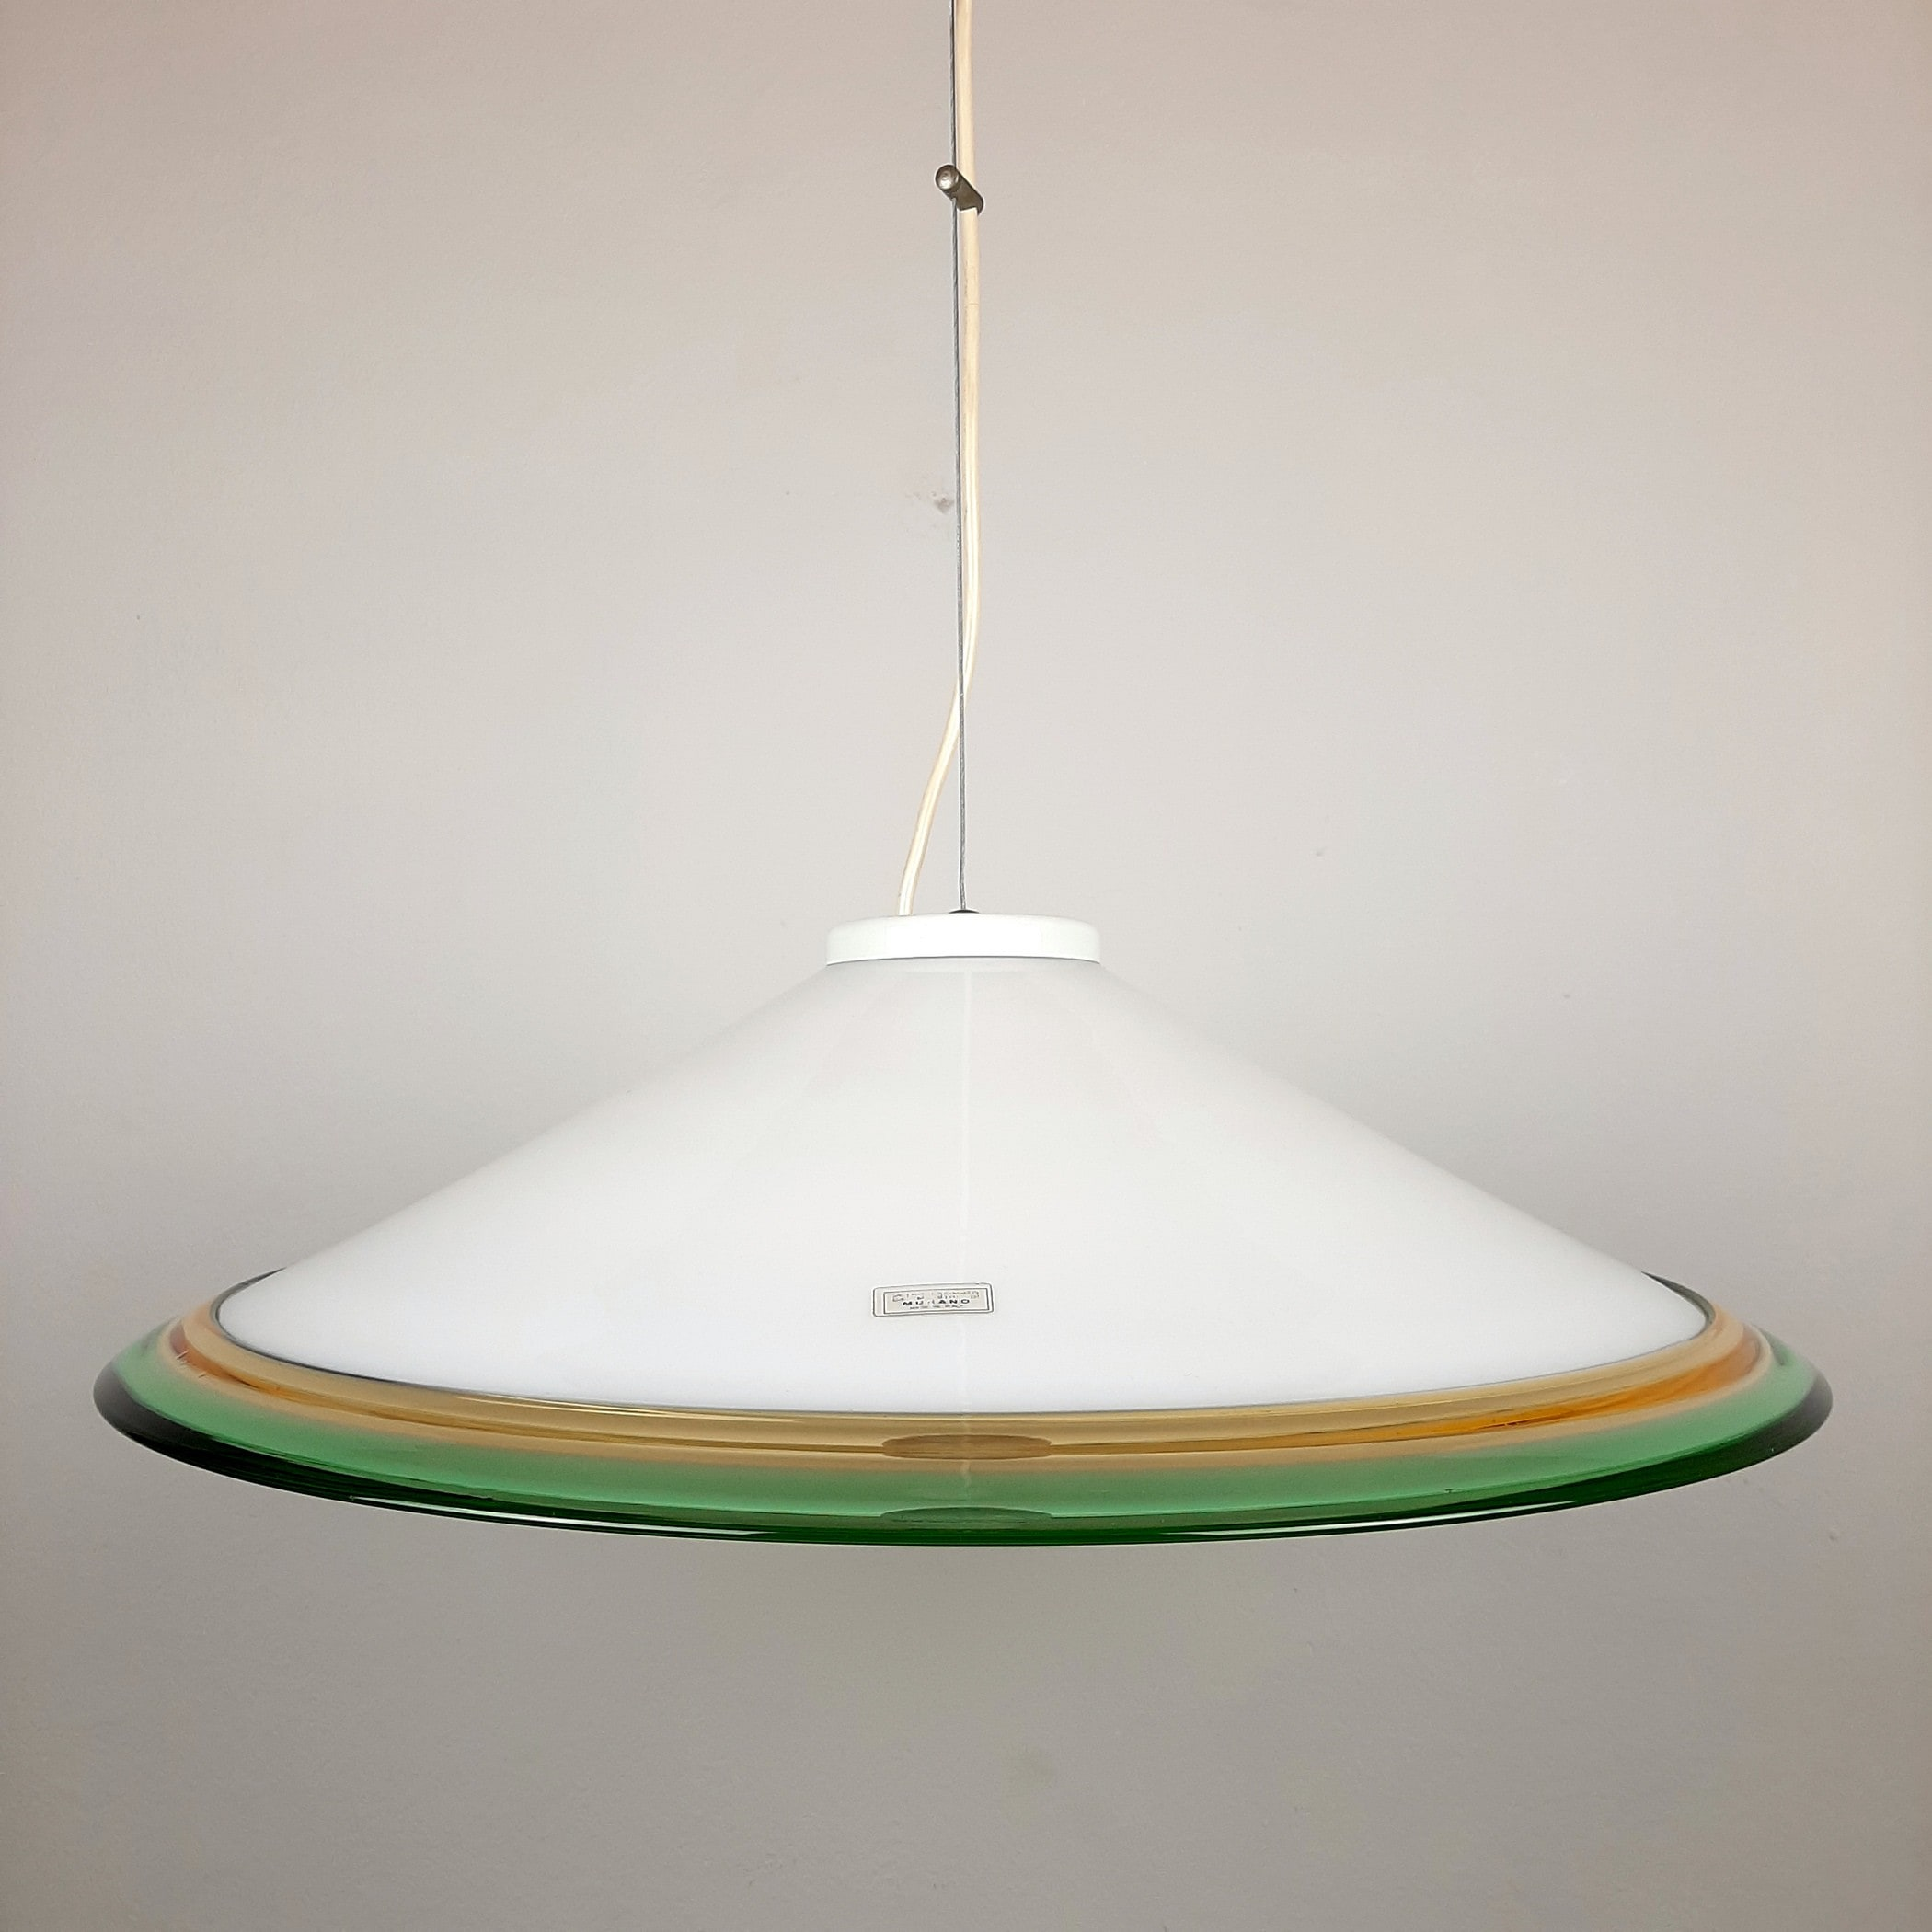 Vintage murano glass pendant lamp Italy 1970s White Green Yellow